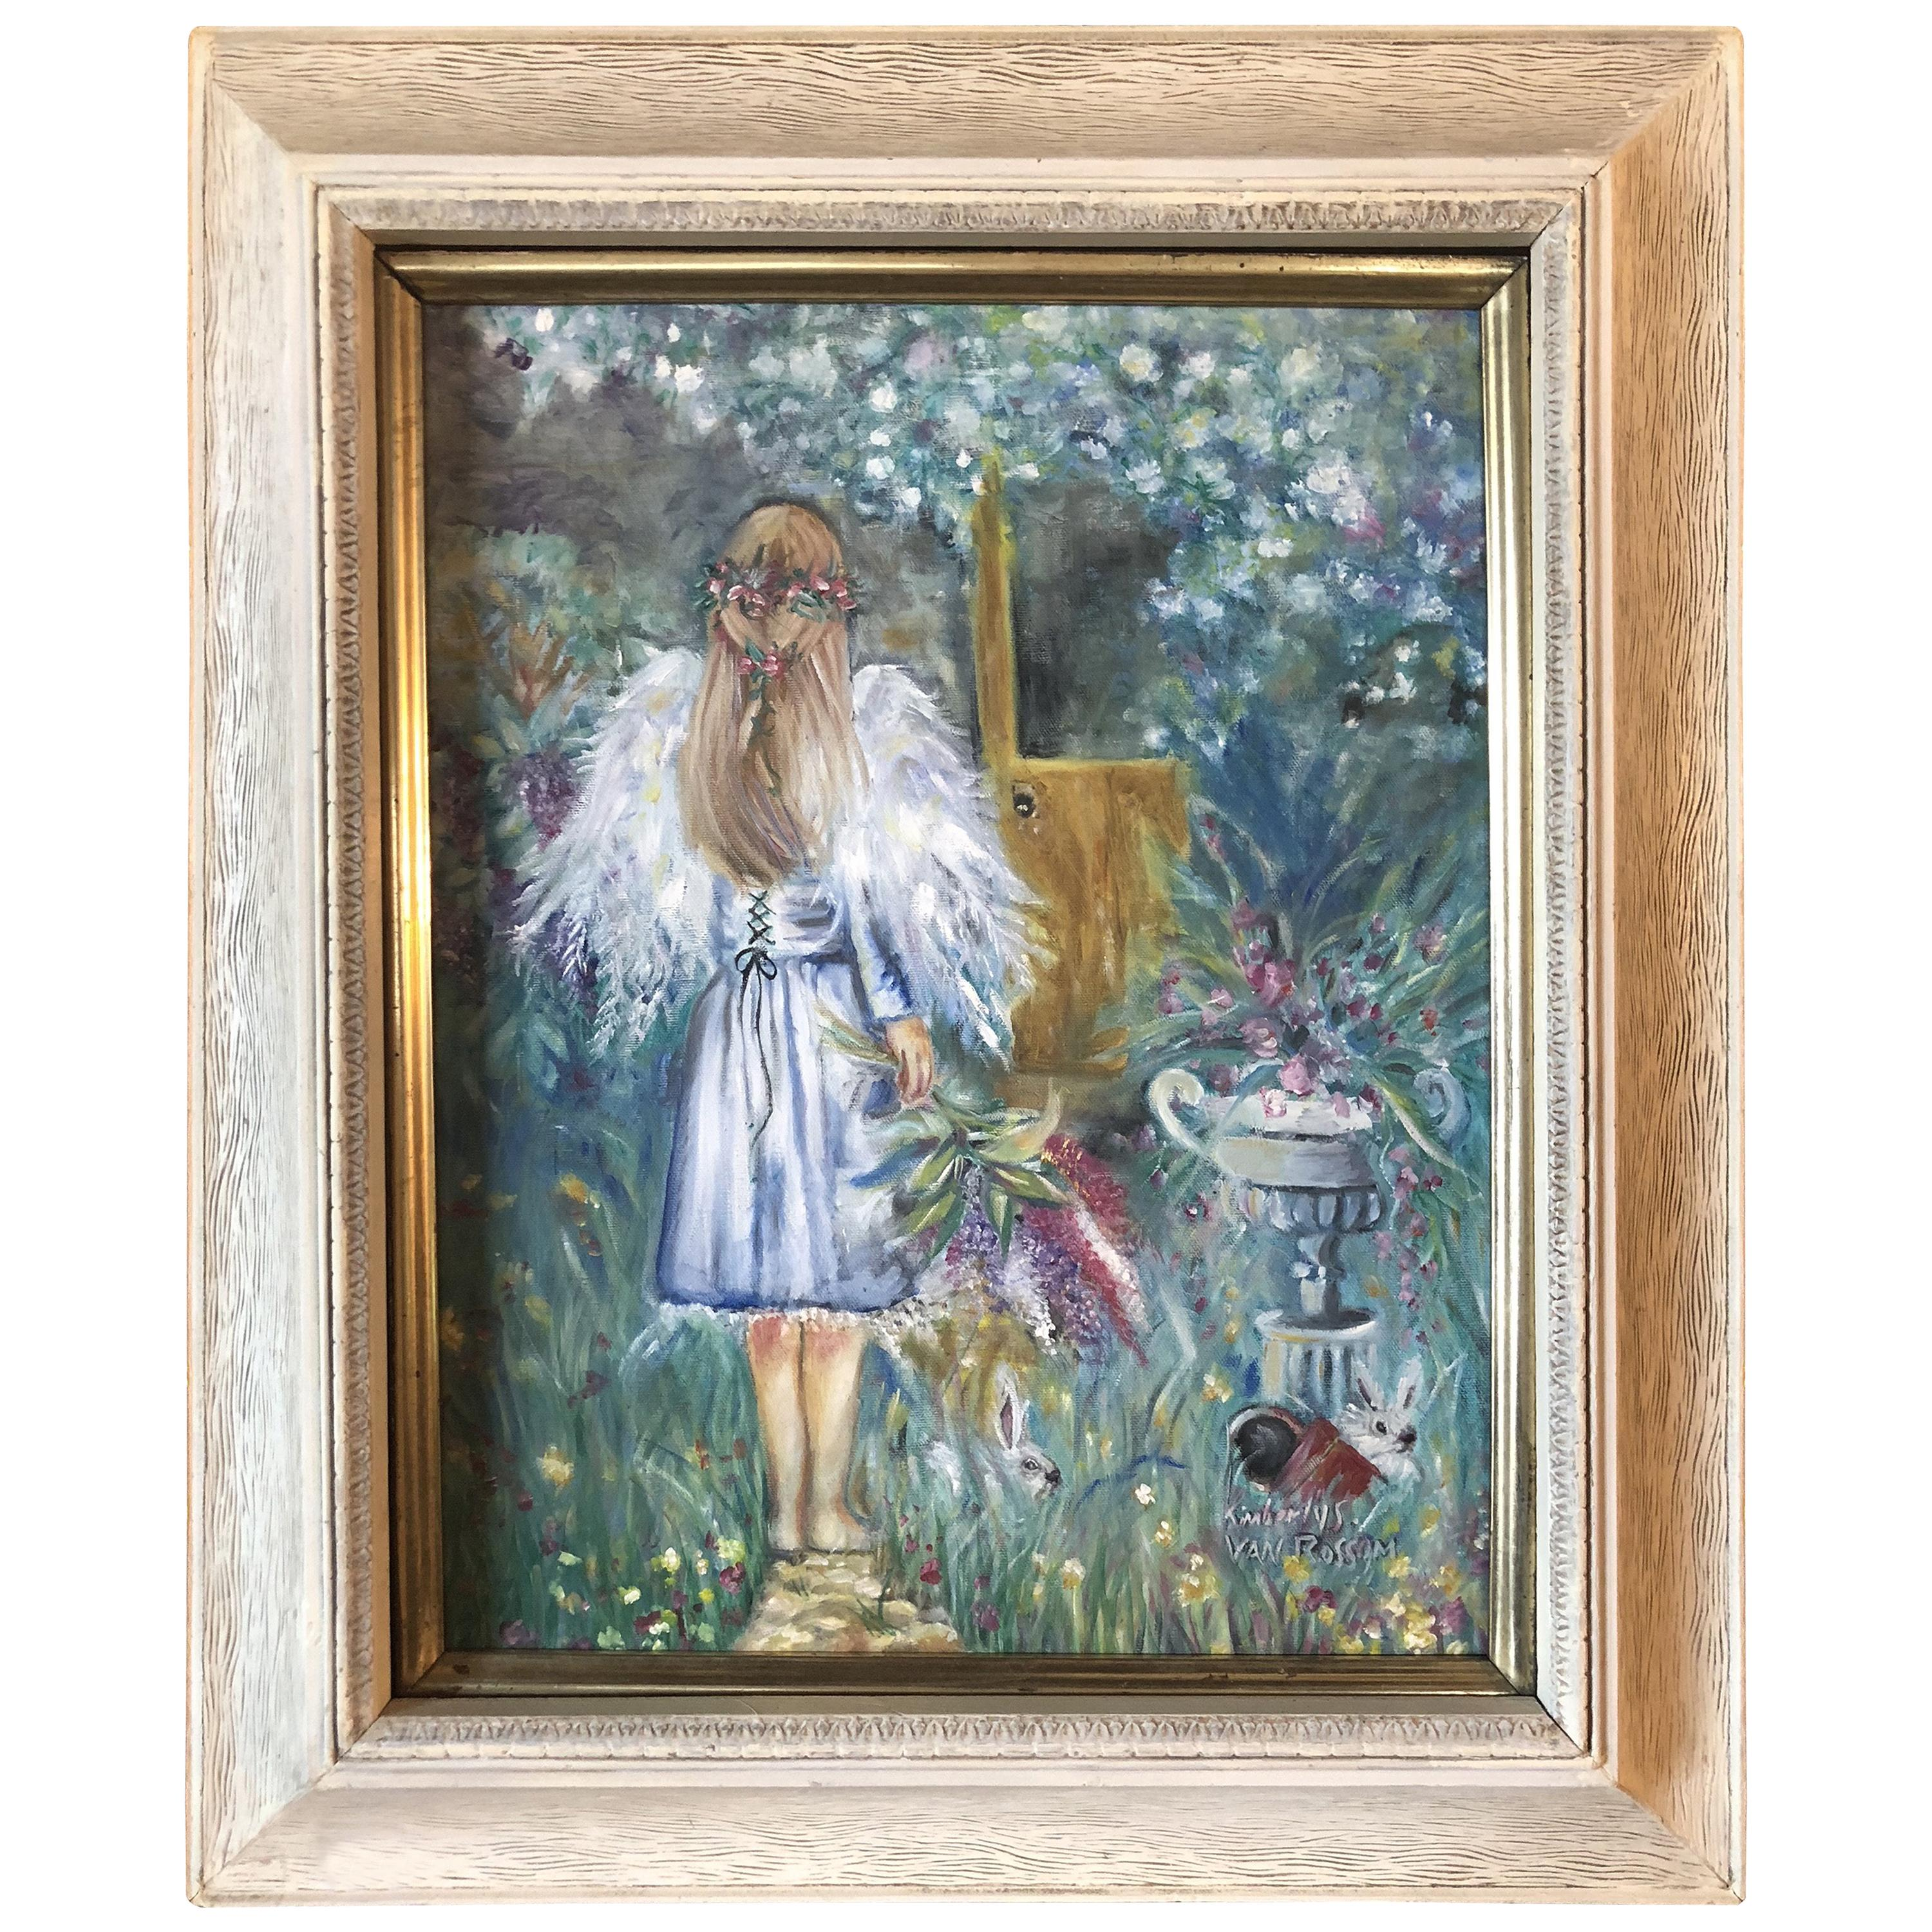 Acrylic on Canvas Painting of a Young Girl Signed Kimberly Van Rossum